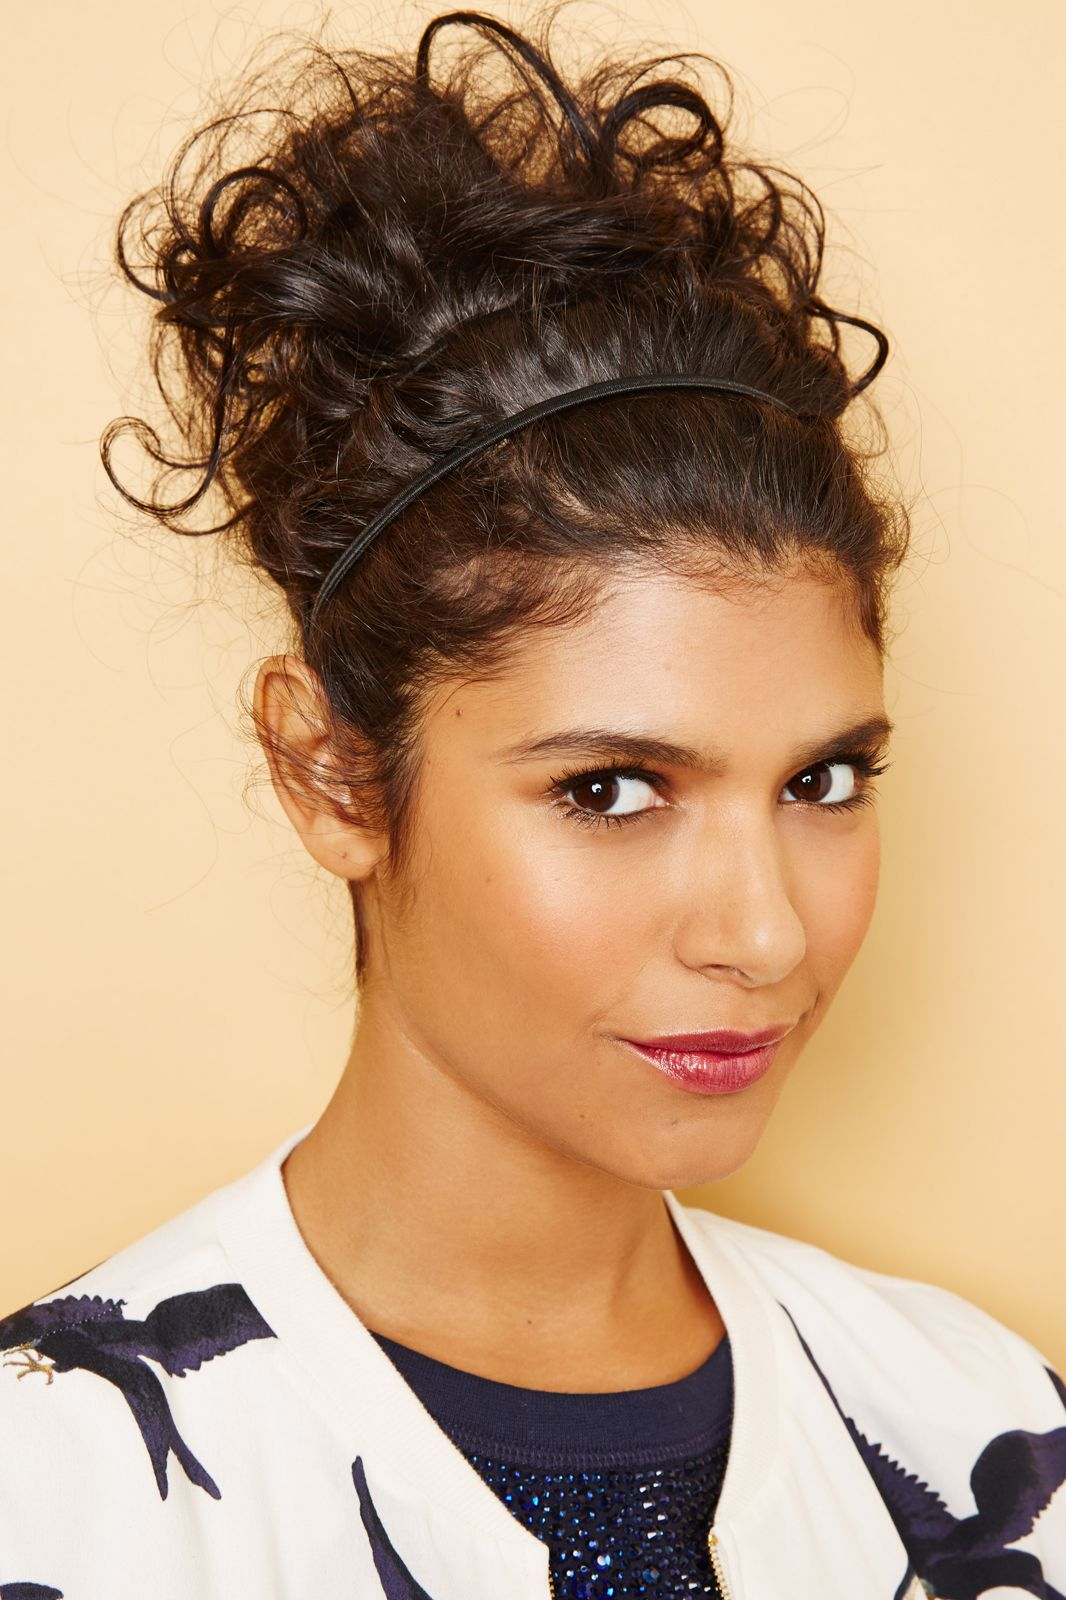 Curly hairstyles spring diy looks curly you ve and formal